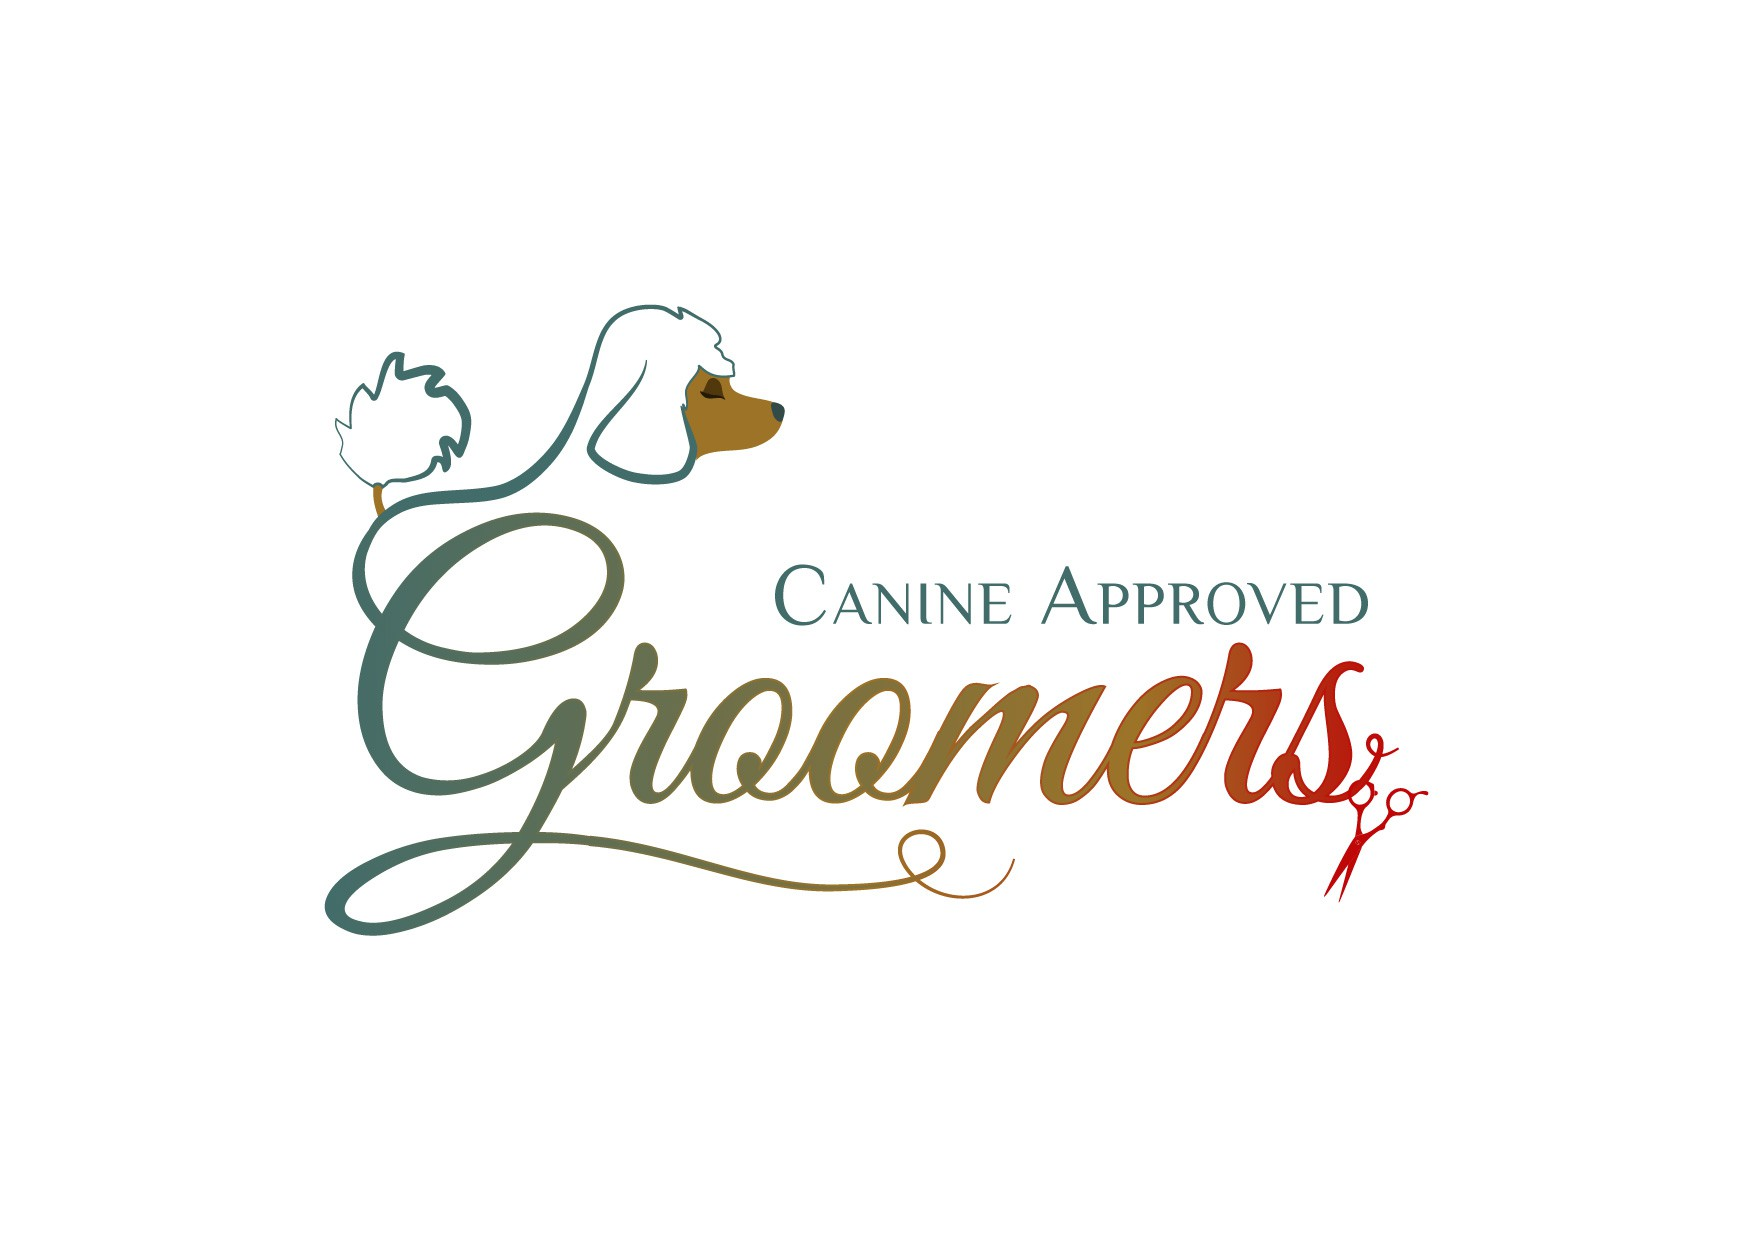 Create An Enticing Logo For Canine Approved Groomers